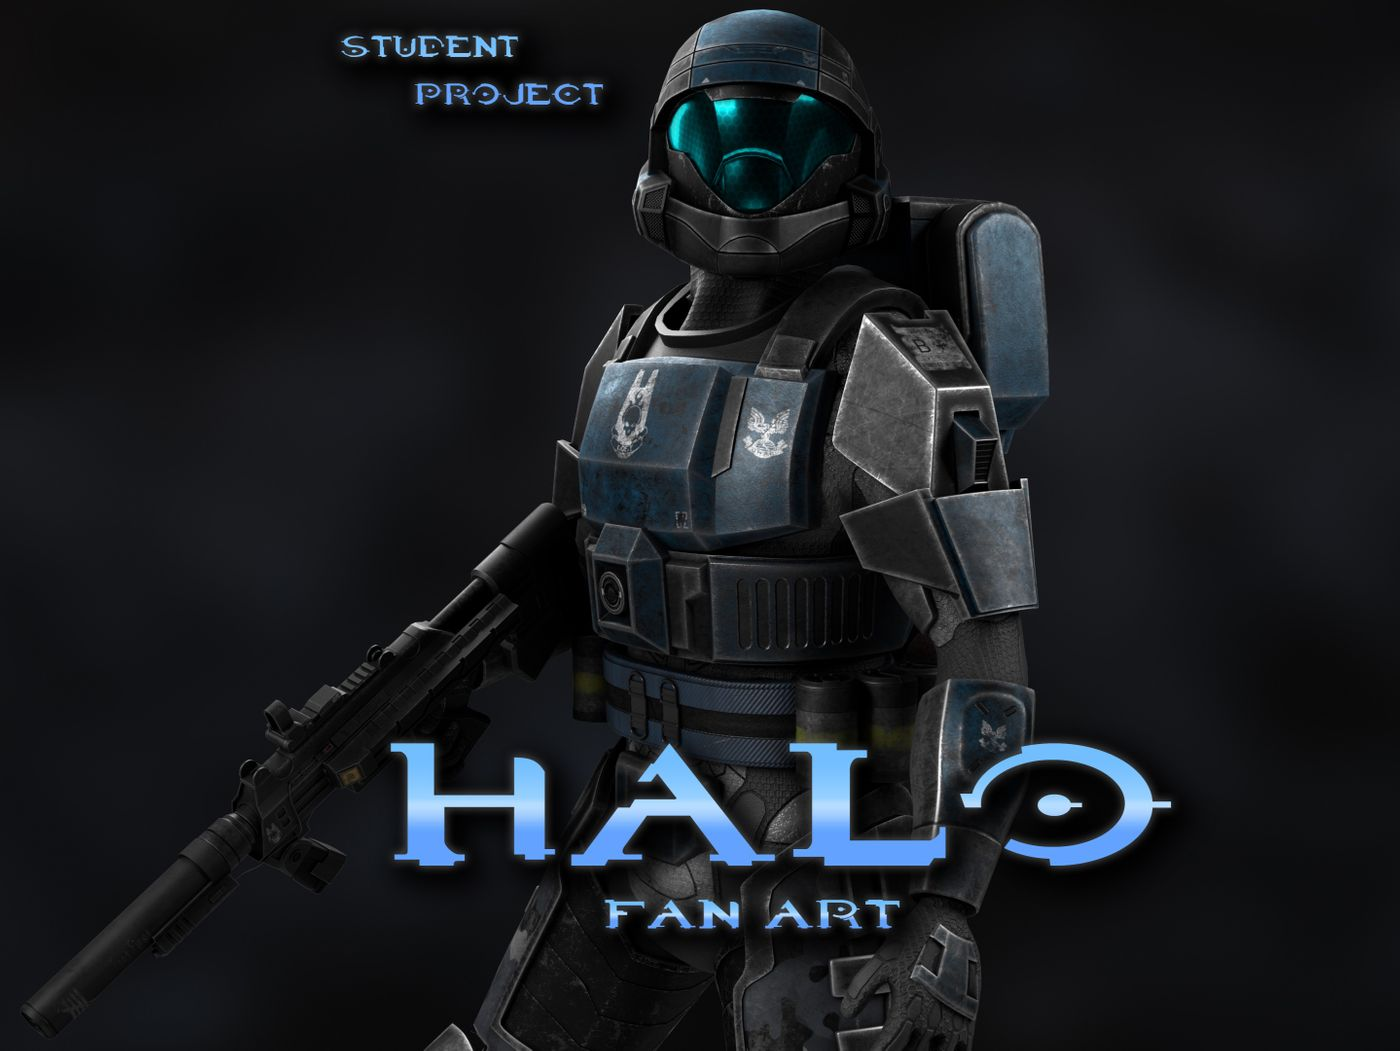 Hope-Halo Student Project